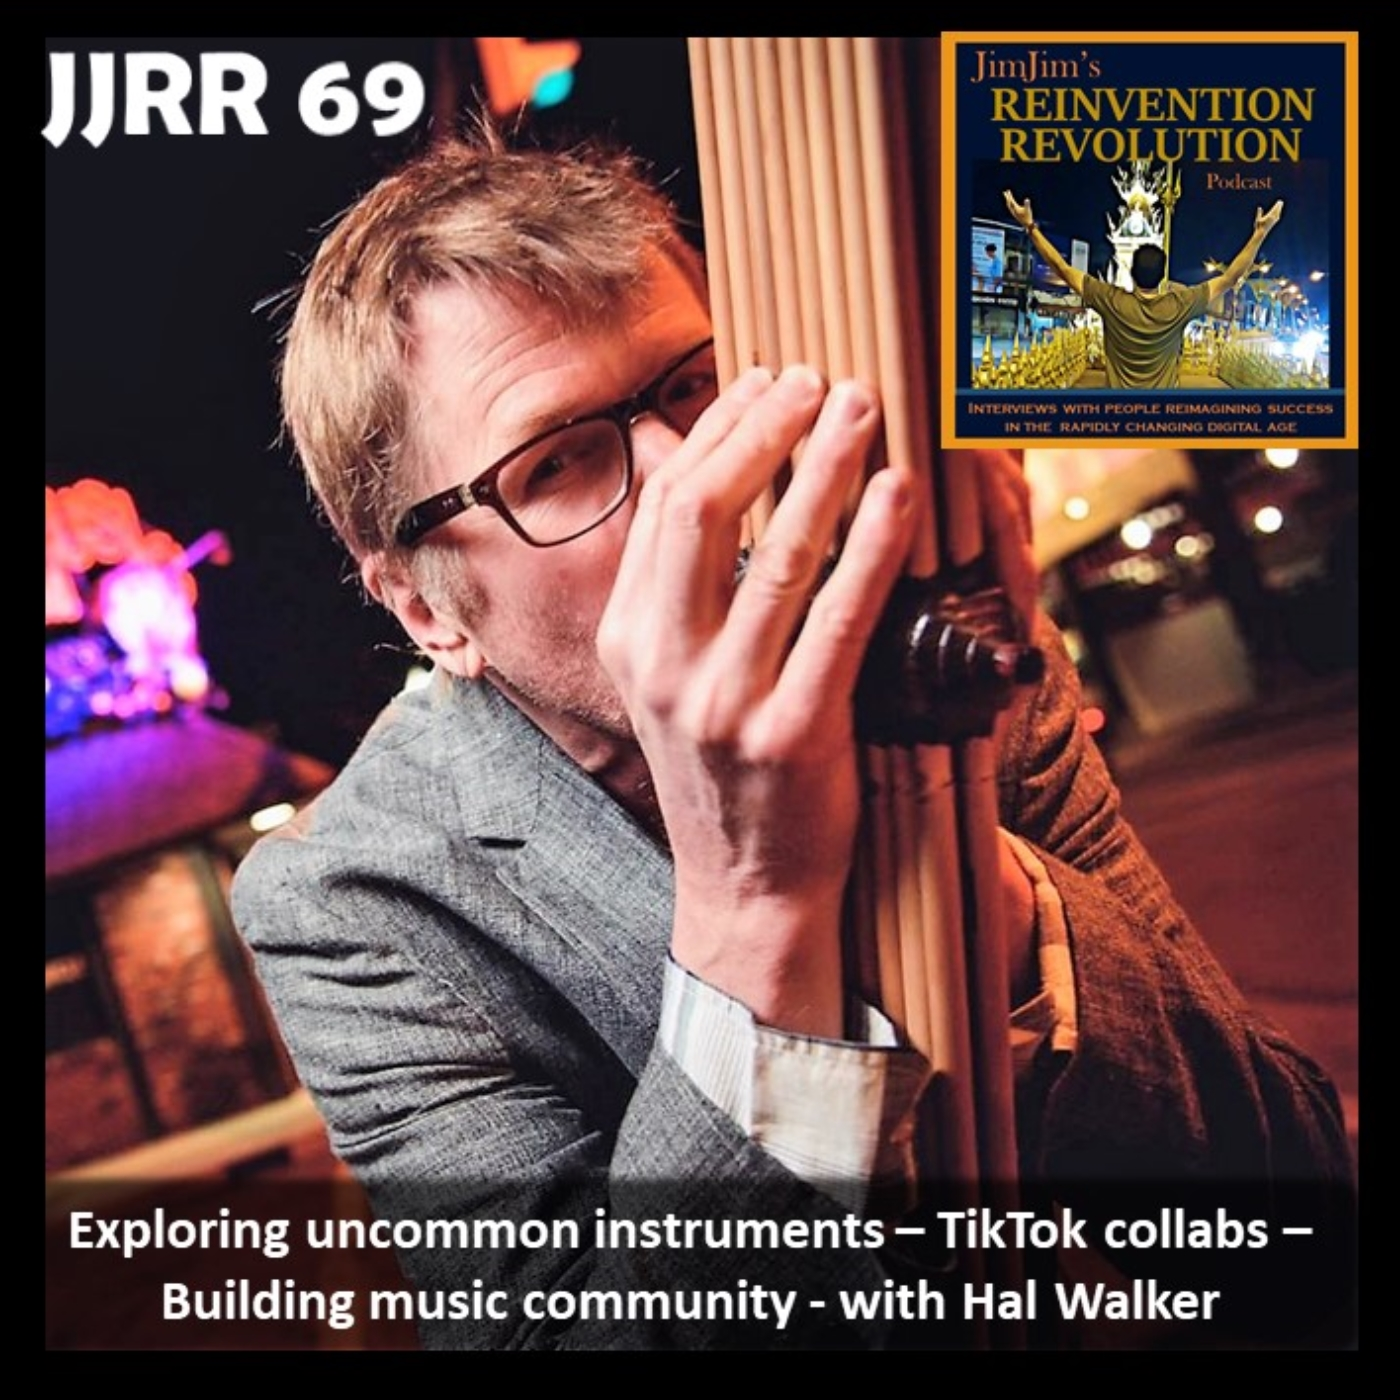 JJRR 69 Exploring uncommon instruments – TikTok collabs – Building music community – with Hal Walker